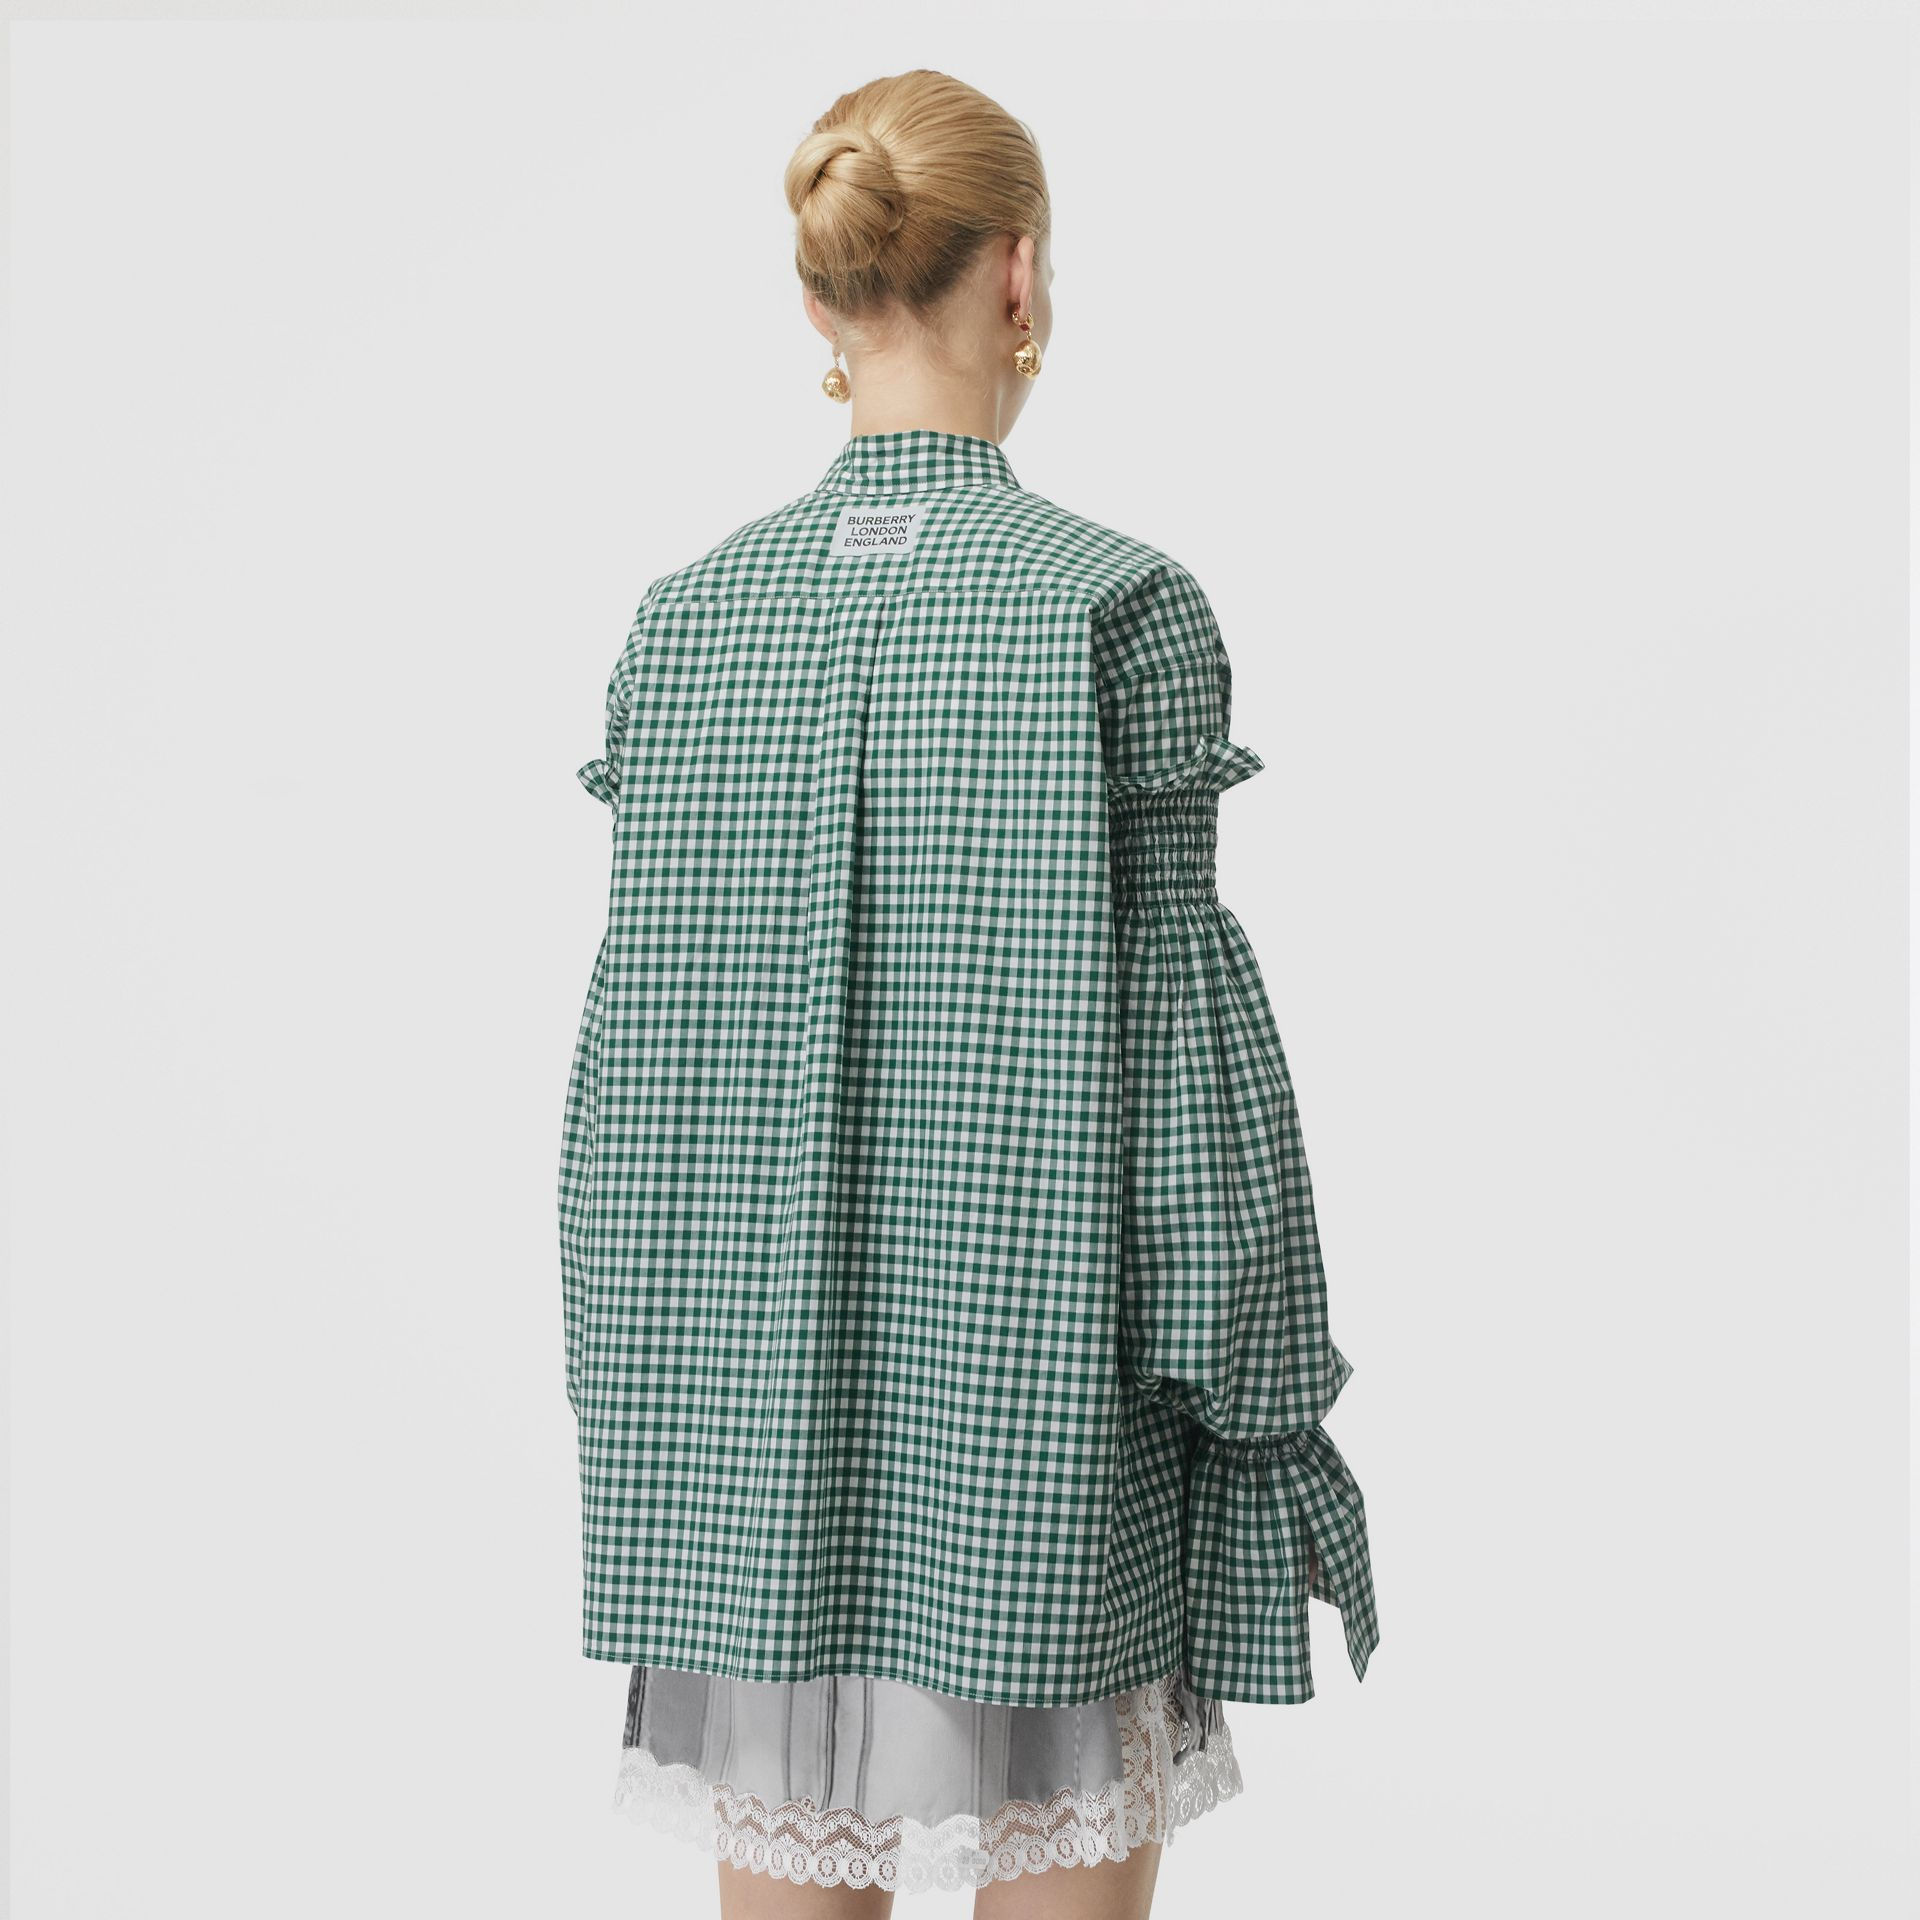 Puff-sleeve Gingham Cotton Oversized Shirt in White/green - Women | Burberry - gallery image 2